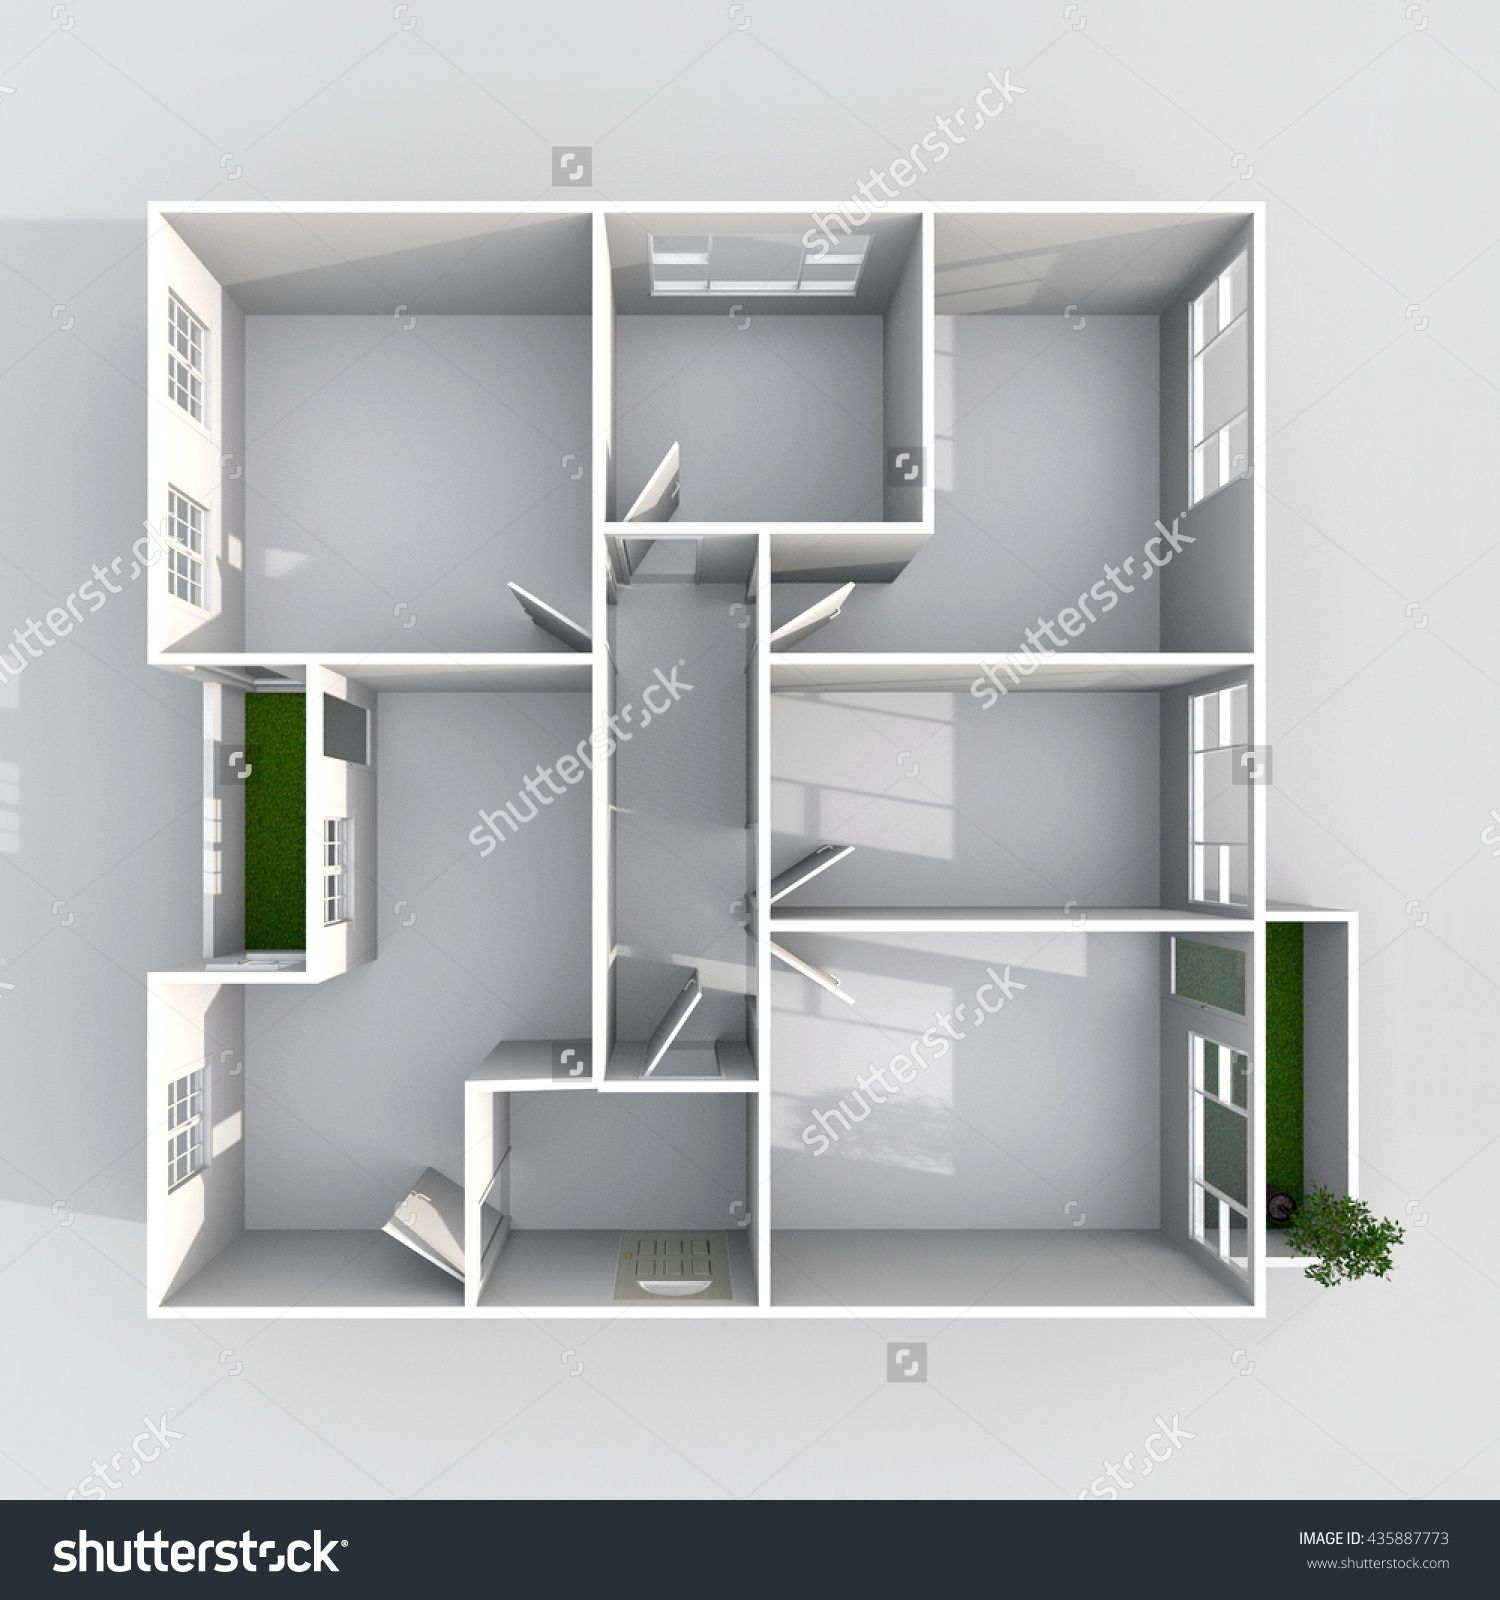 3d Interior Rendering Plan View Of Square Empty Home Apartment With Balconies Room Bathroom Kitchen Living RoomsEntrance